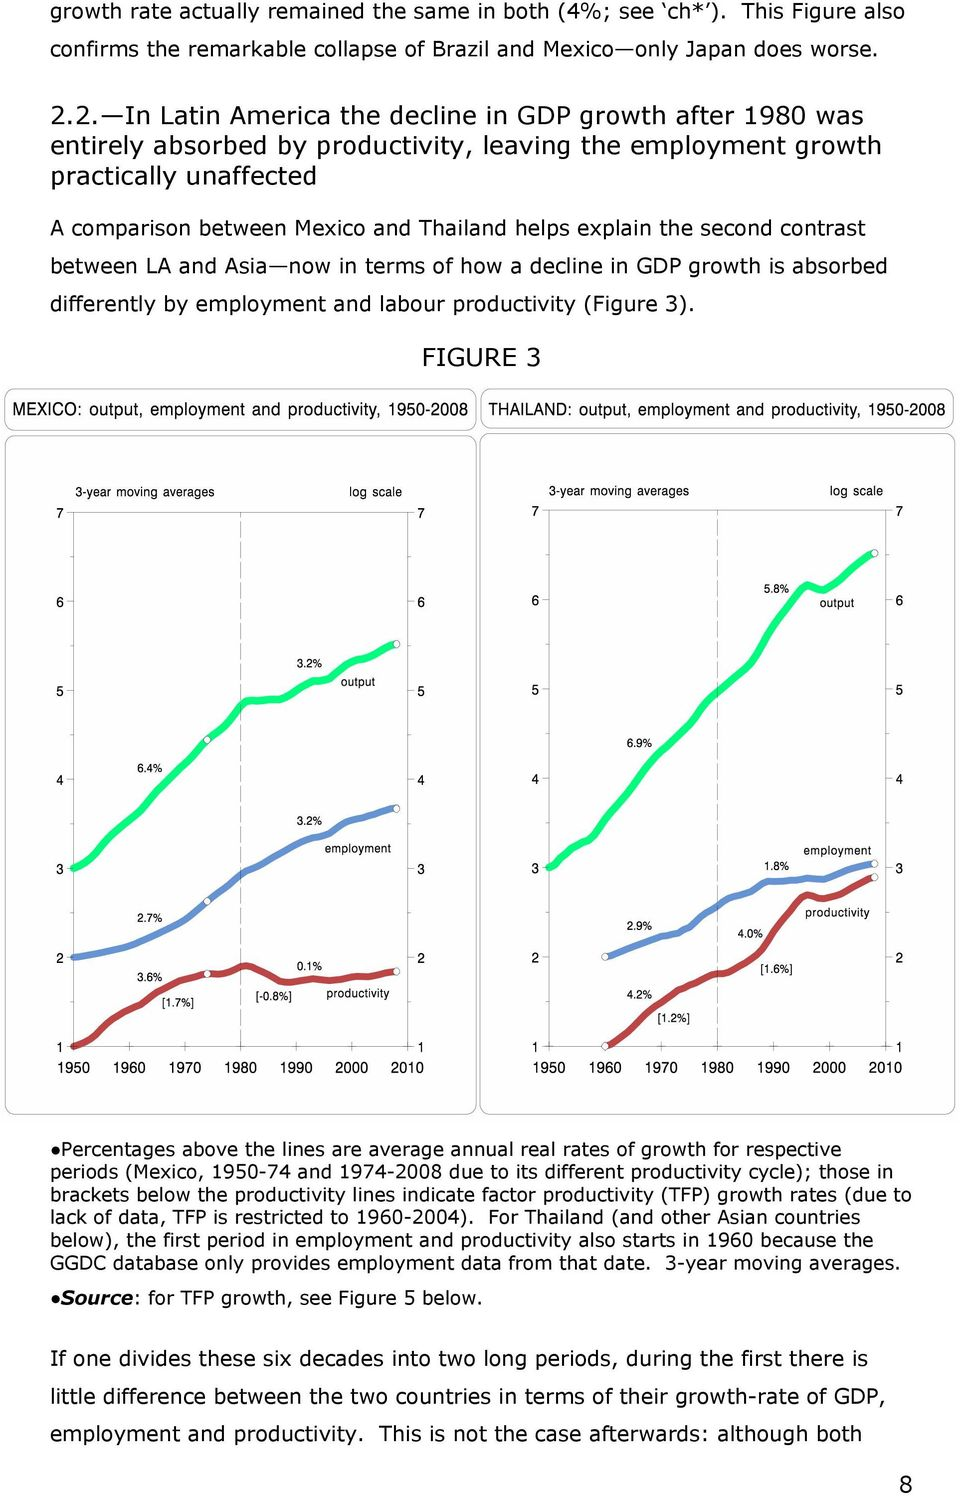 explain the second contrast between LA and Asia now in terms of how a decline in GDP growth is absorbed differently by employment and labour productivity (Figure 3).